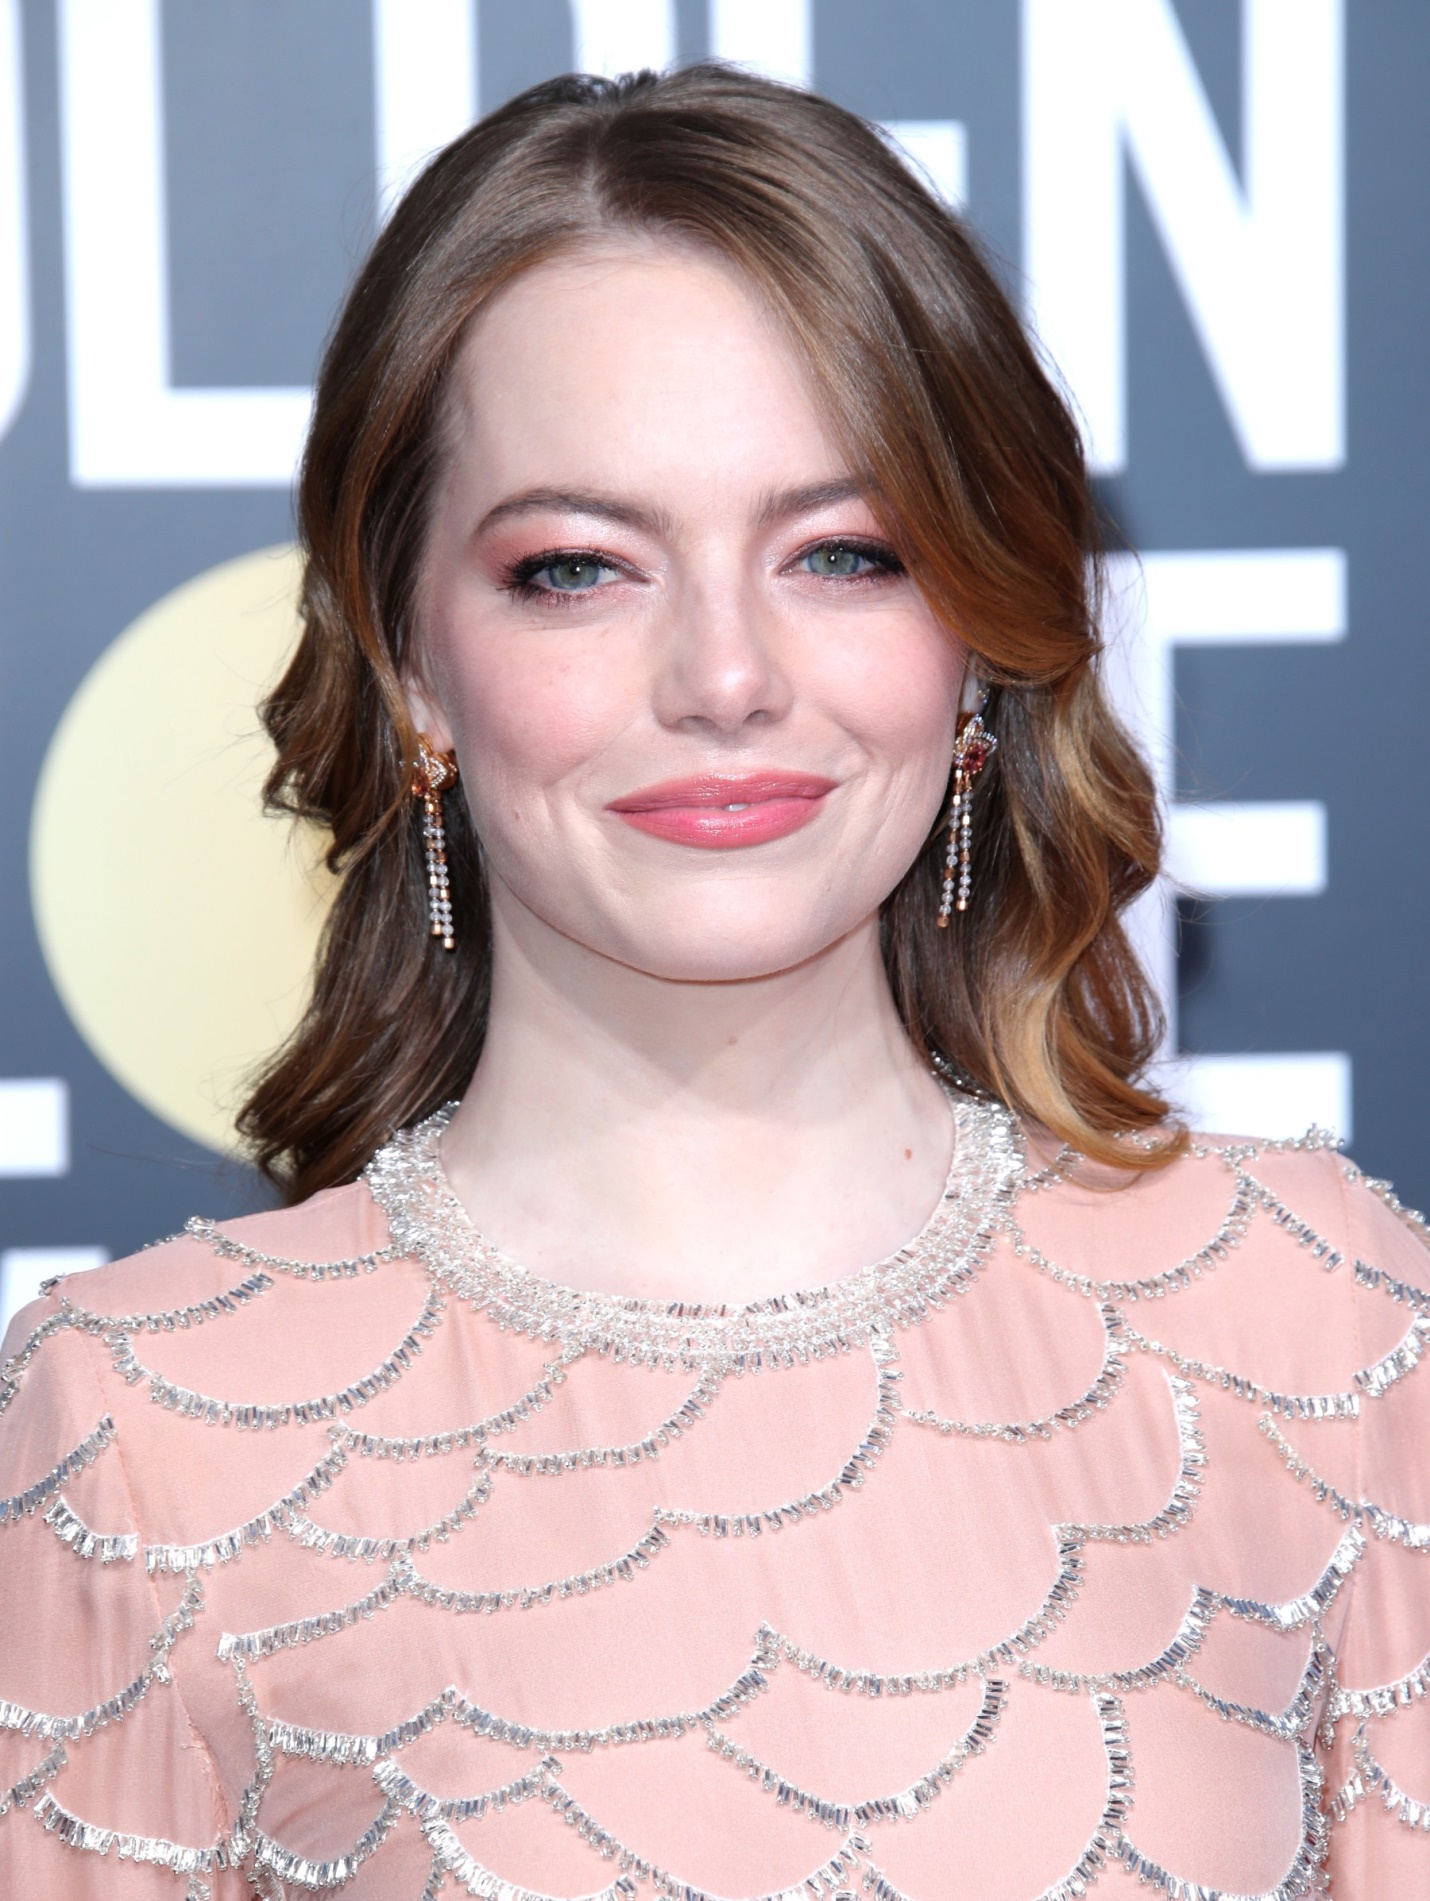 Emma Stone reveals how her mother's cancer changed her life